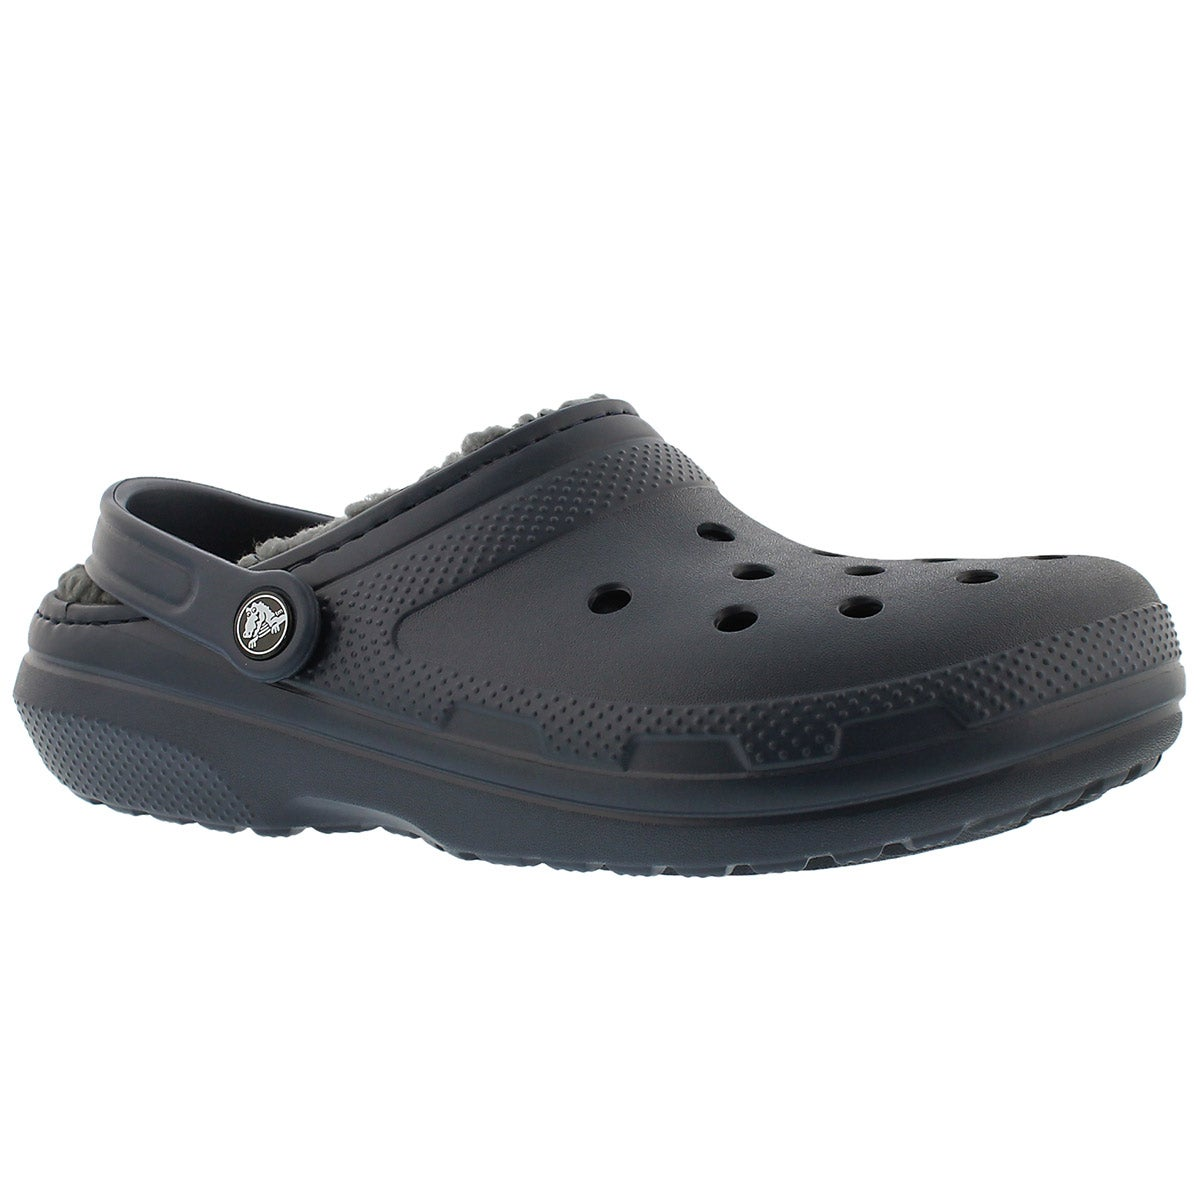 Mns Classic Lined navy comfort clog